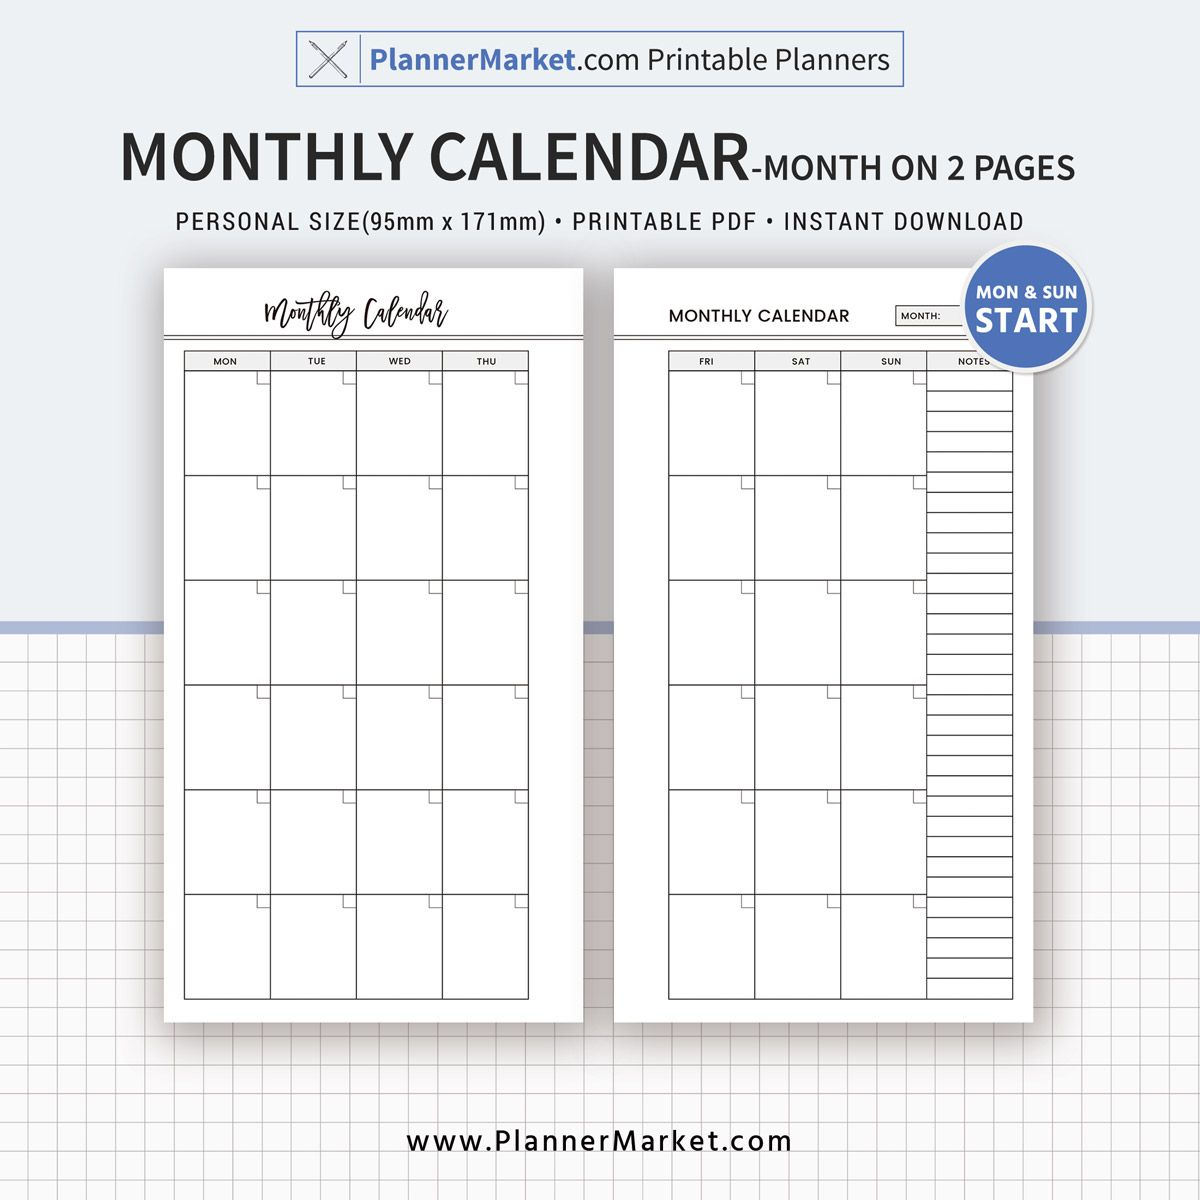 Monthly Calendar Monthly Planner Month On 2 Pages